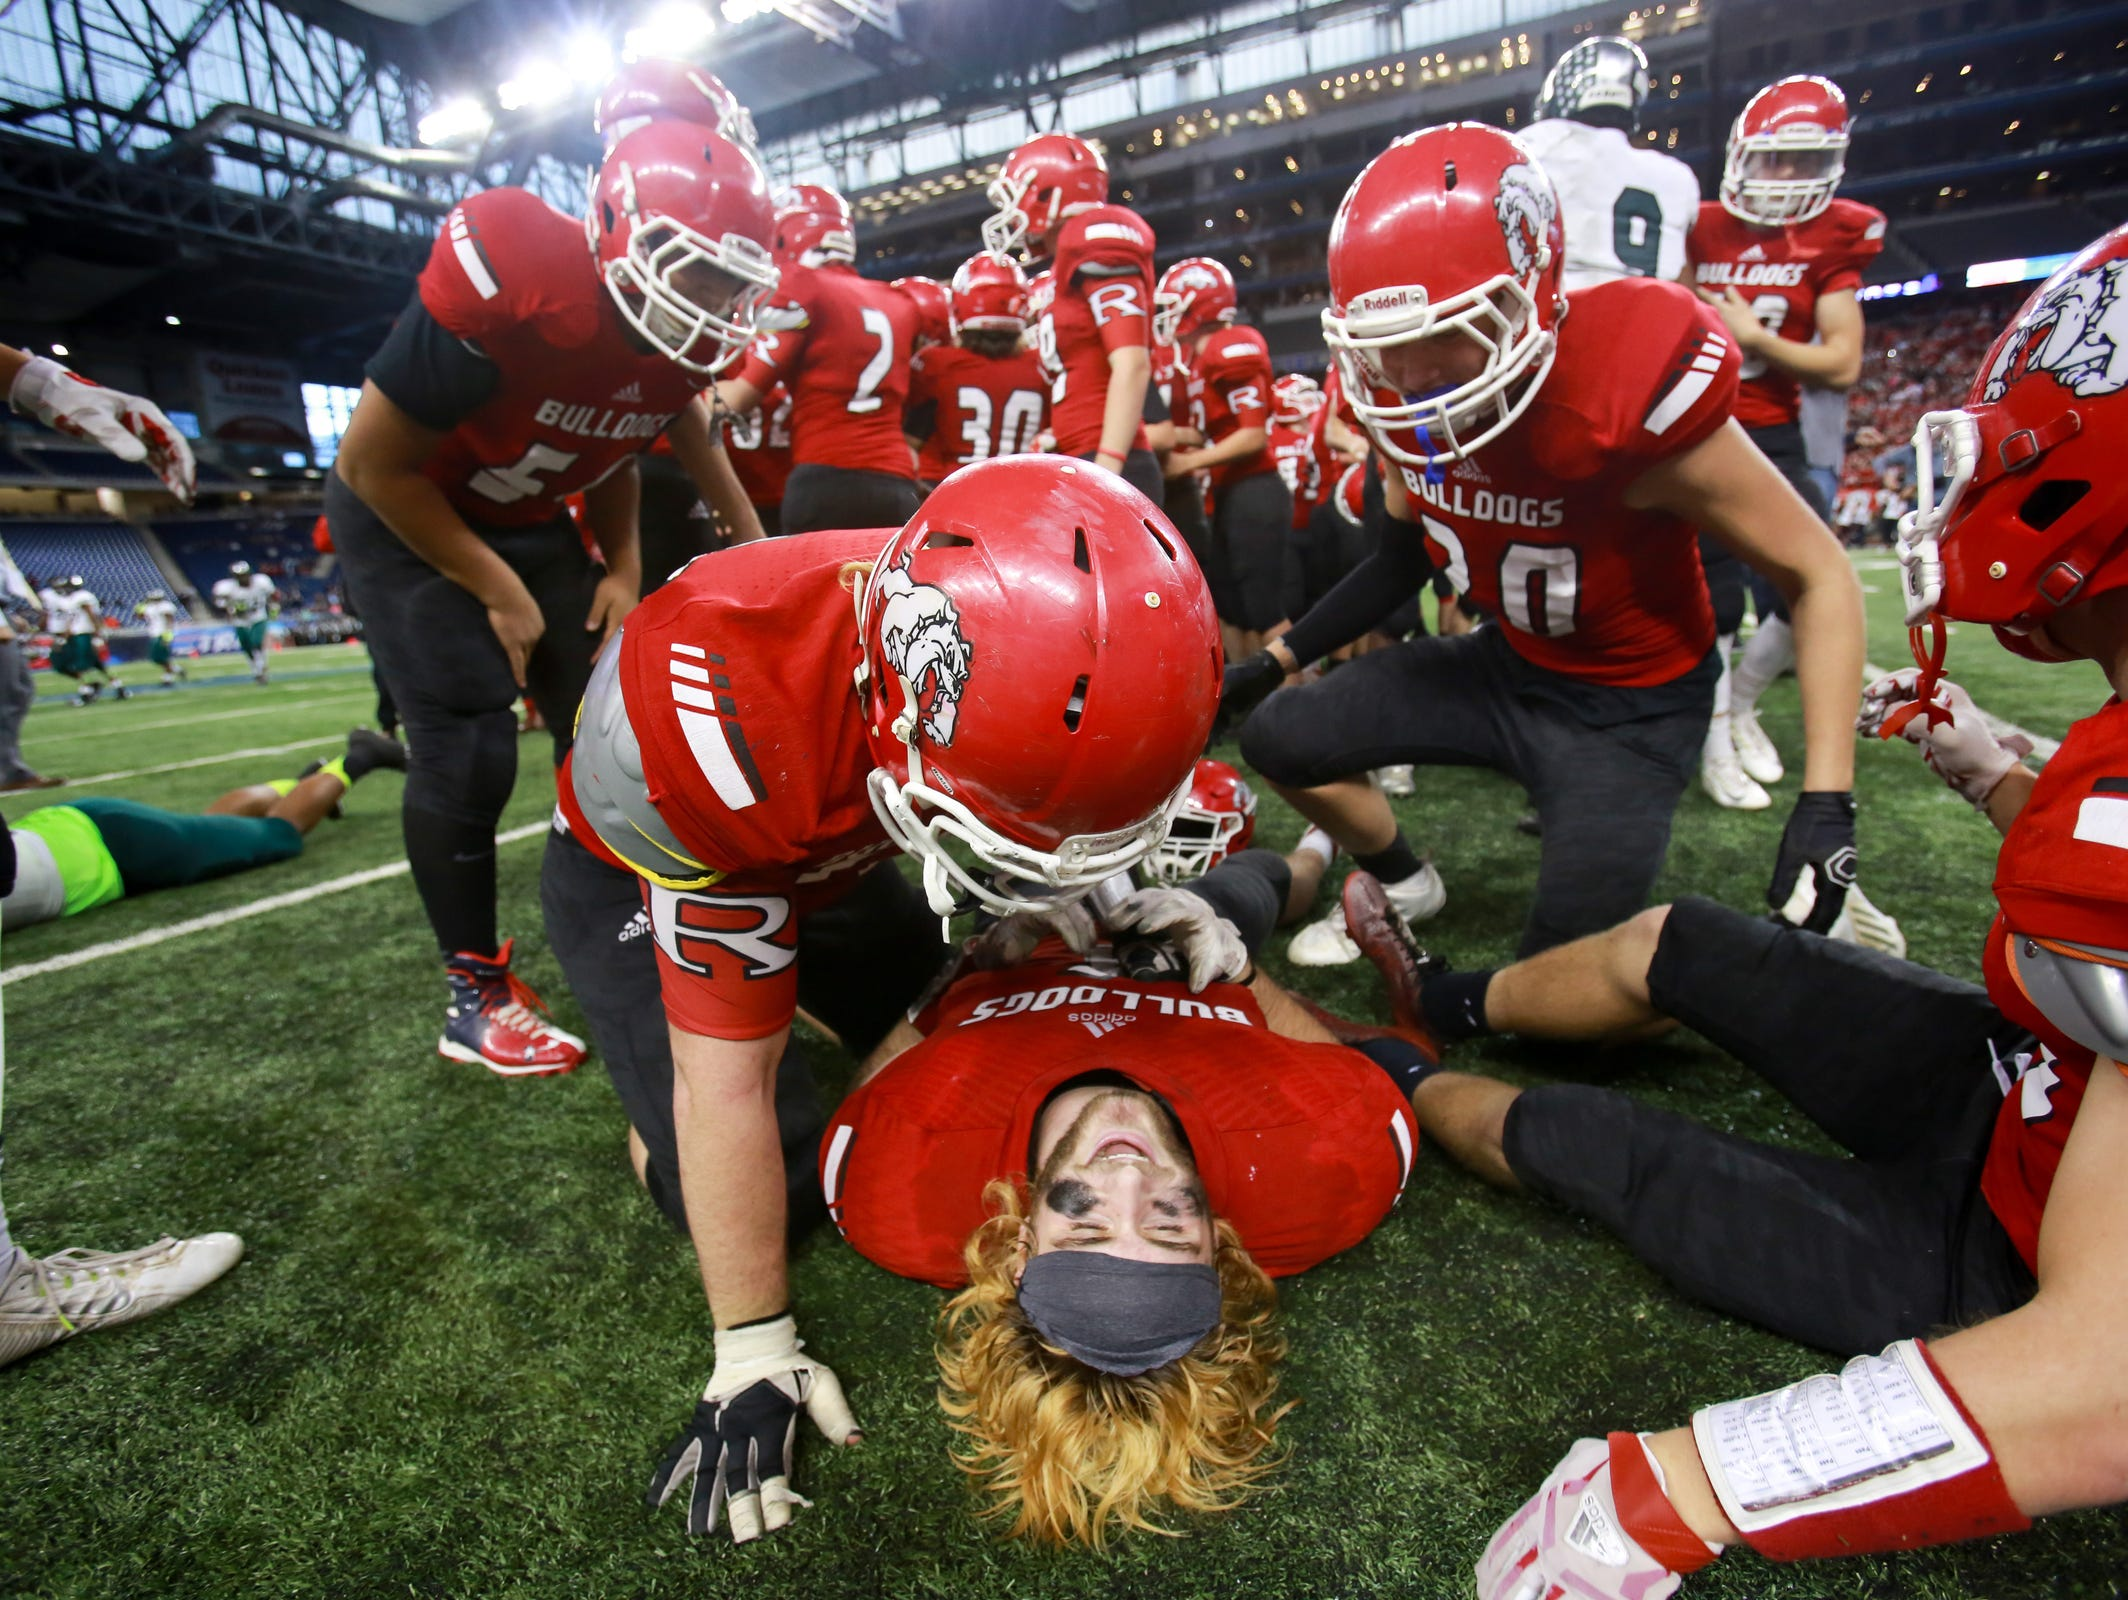 Romeo TE Mitchell Heimbuch is surrounded by his teammates after they defeated Detroit Cass Tech 41-27, during the Michigan High School Athletic Association football Division 1 finals at Ford Field in Detroit on Saturday, Nov. 28, 2015.